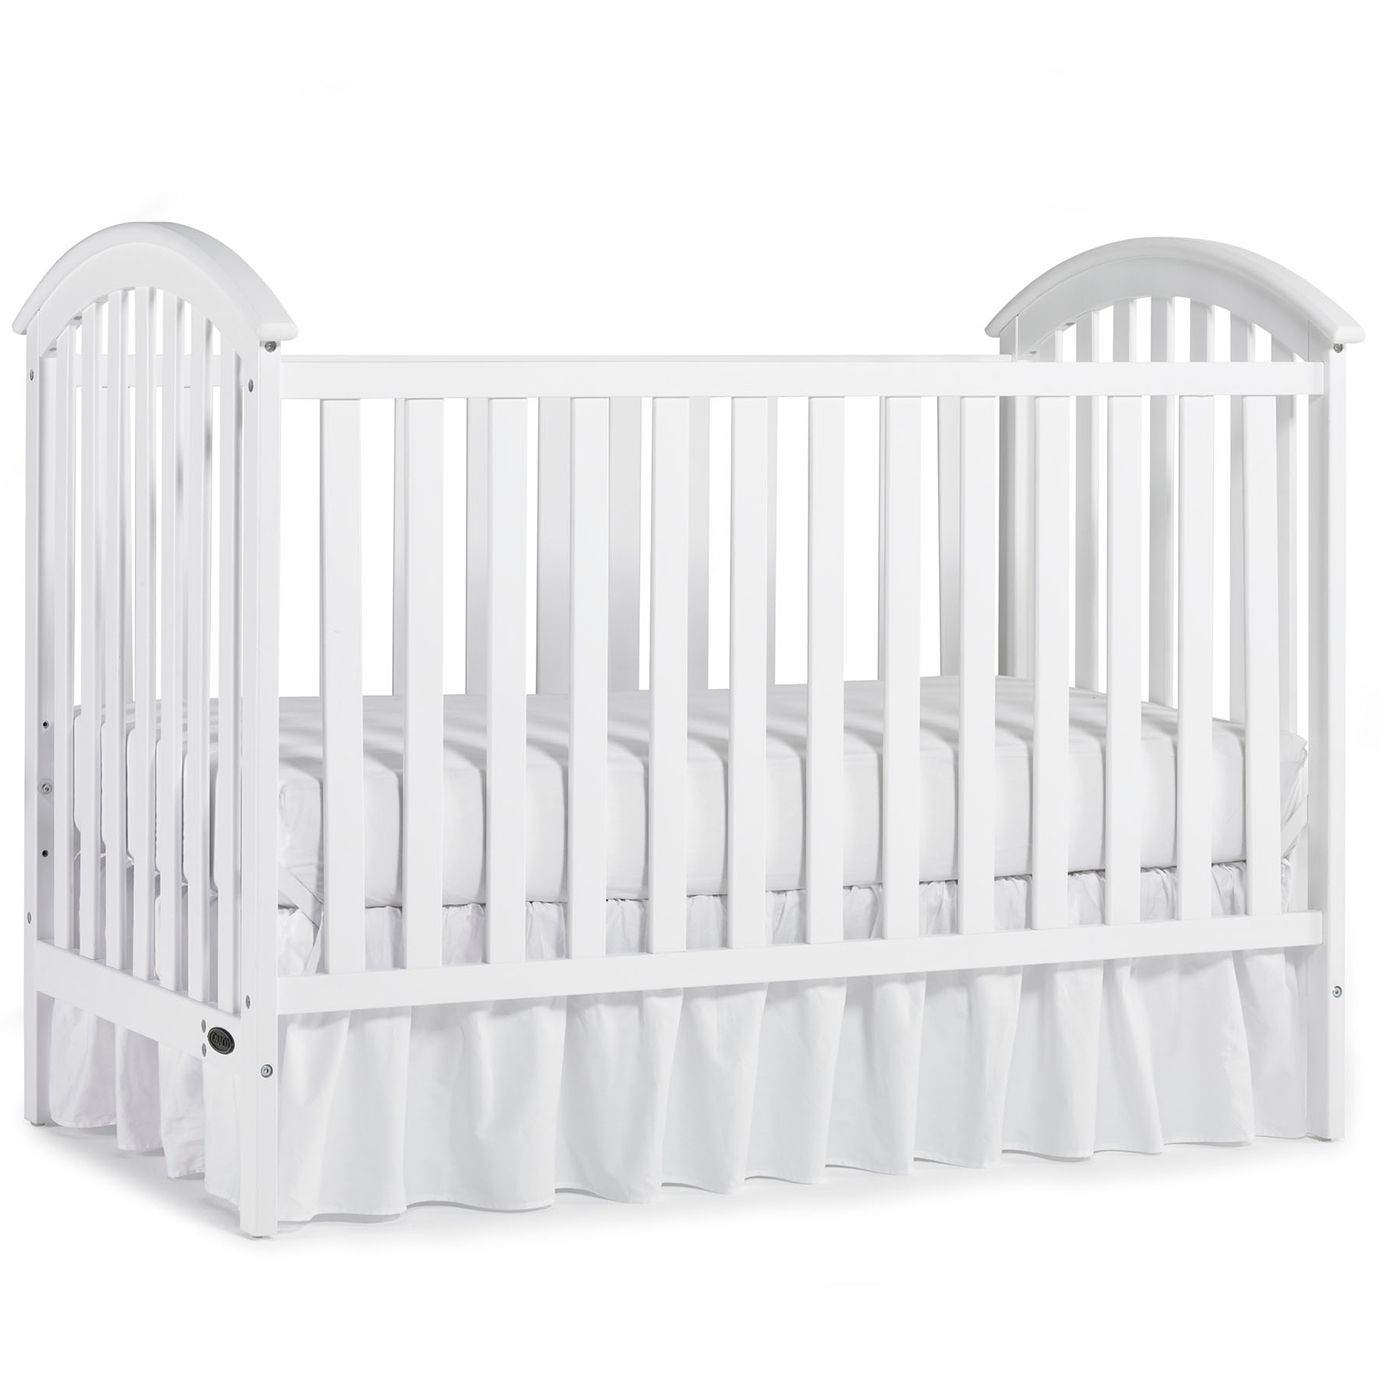 Graco Cribs Freeport Classic 3 In 1 Convertible Crib With Mattress In White Cribs Convertible Crib White Baby Cribs